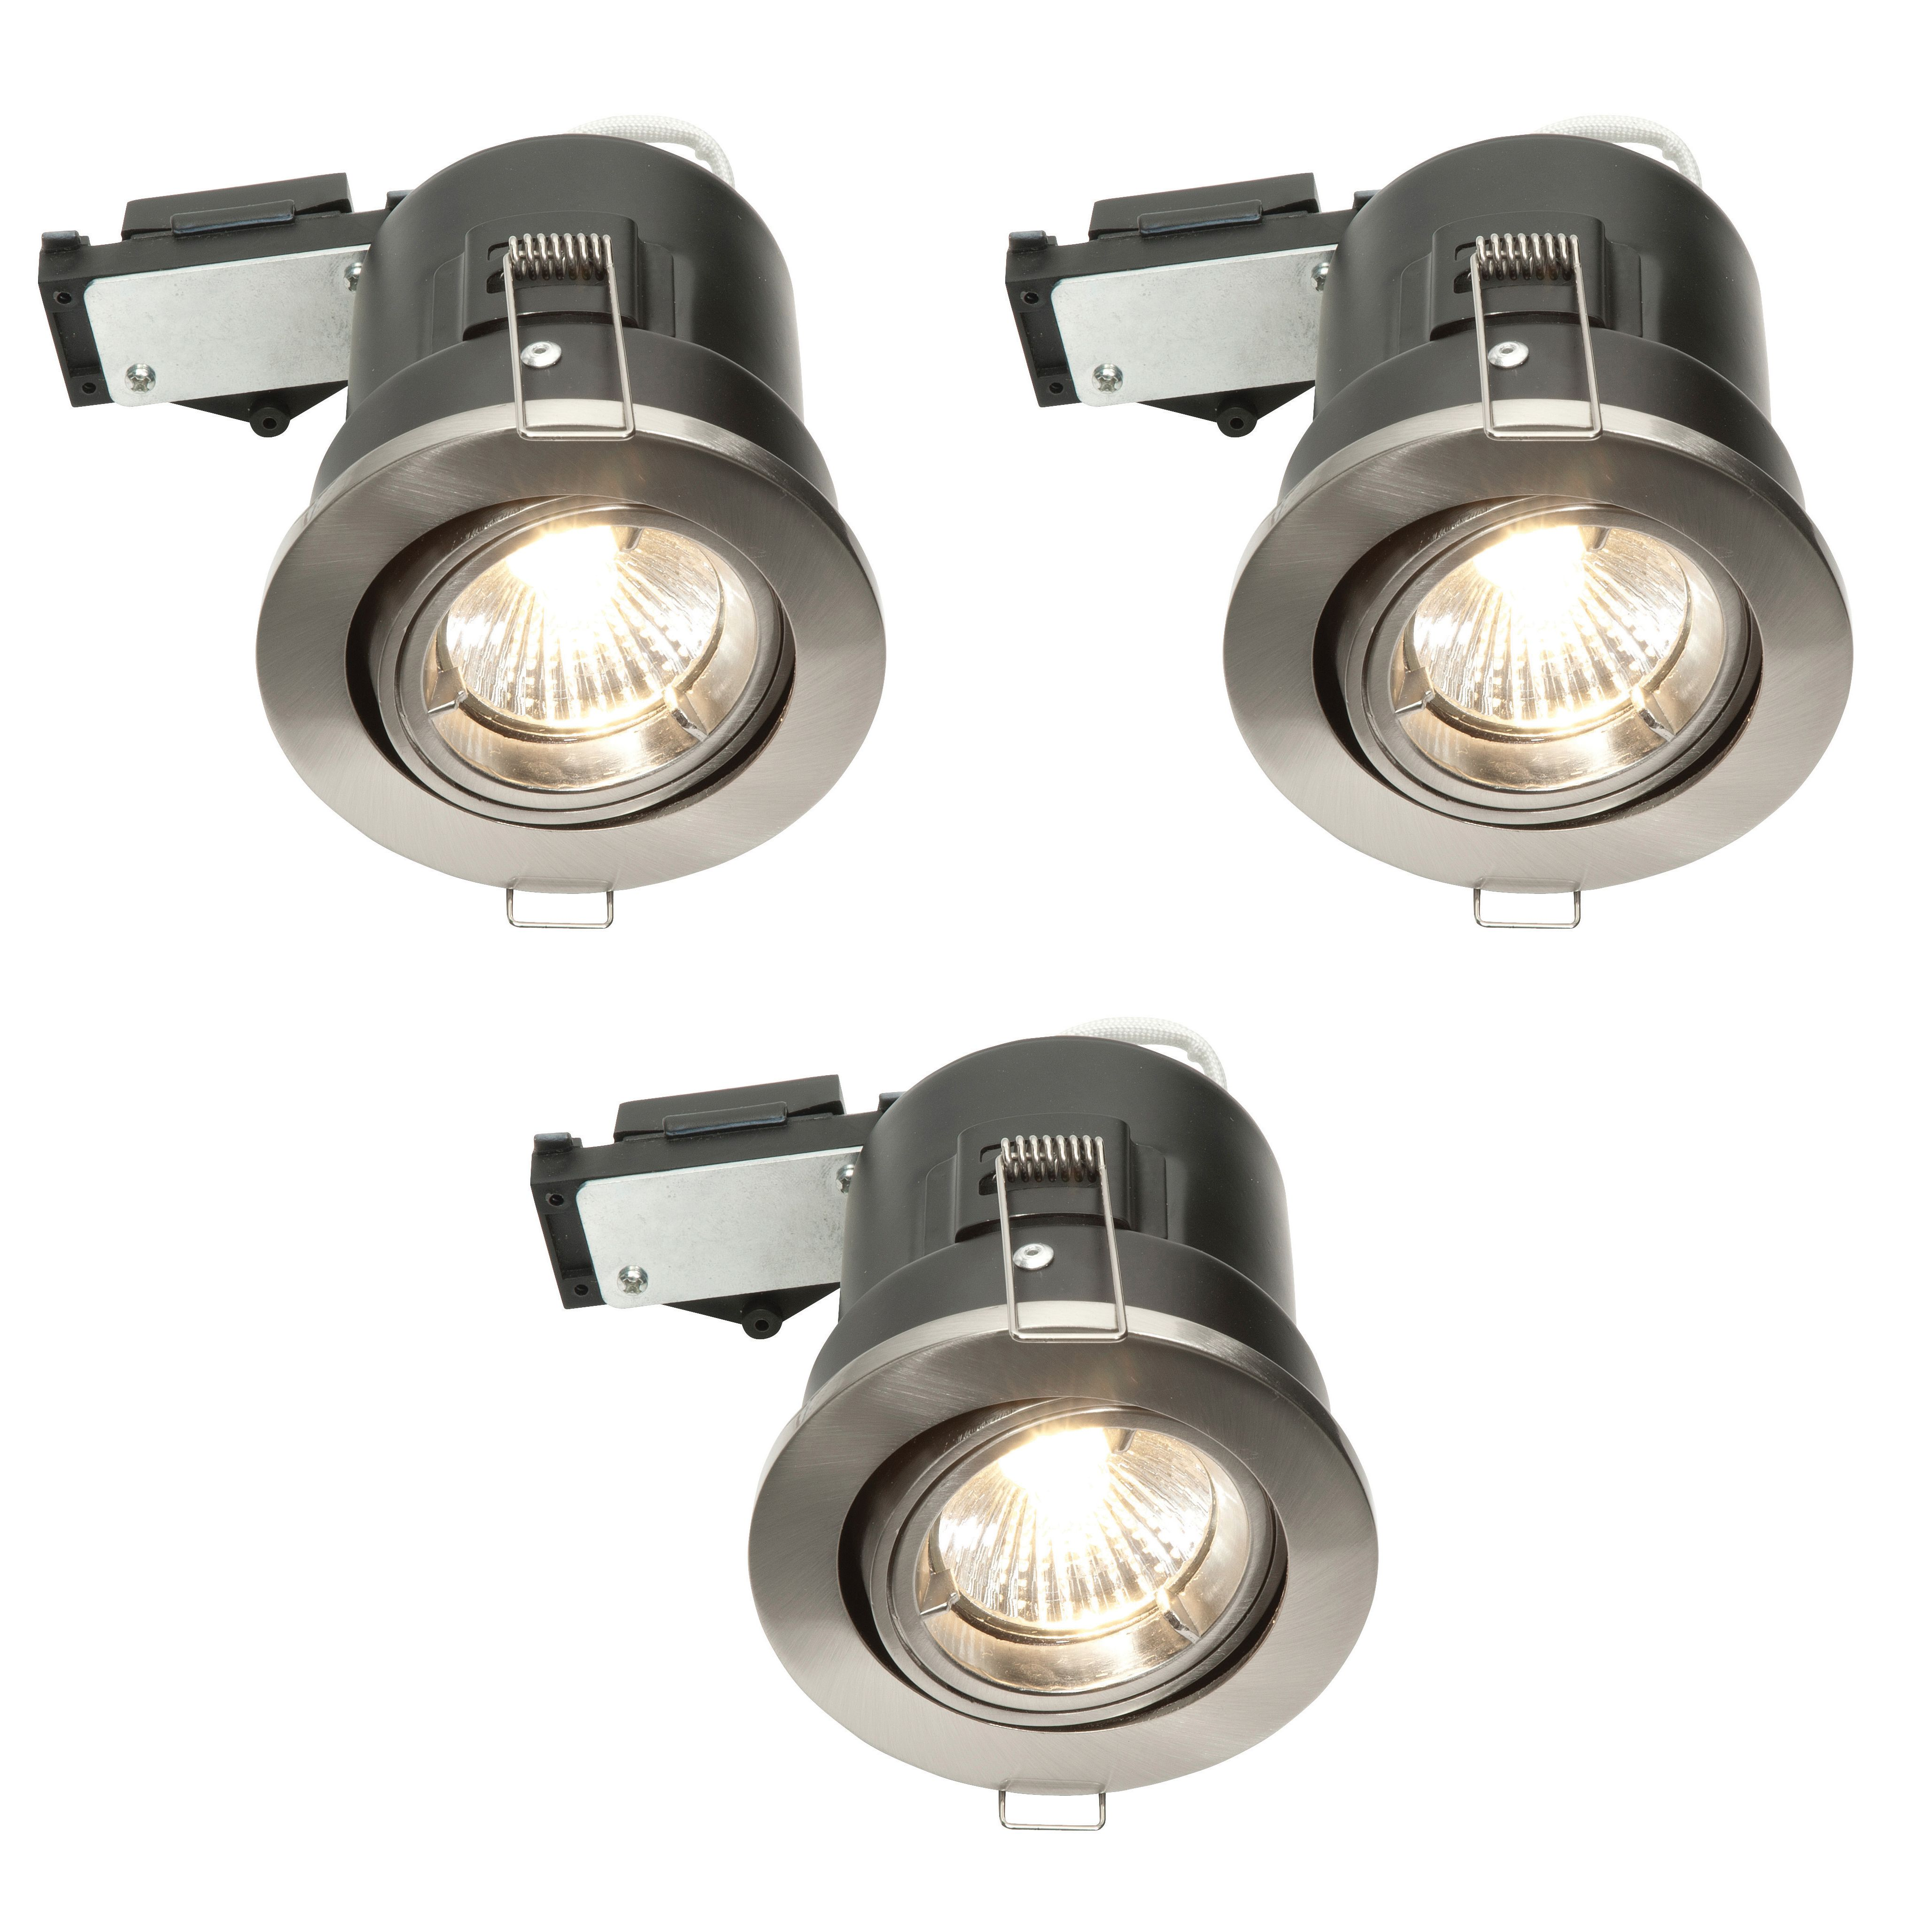 Diall Brushed Chrome Effect LED Adjustable Downlight 3.5 W